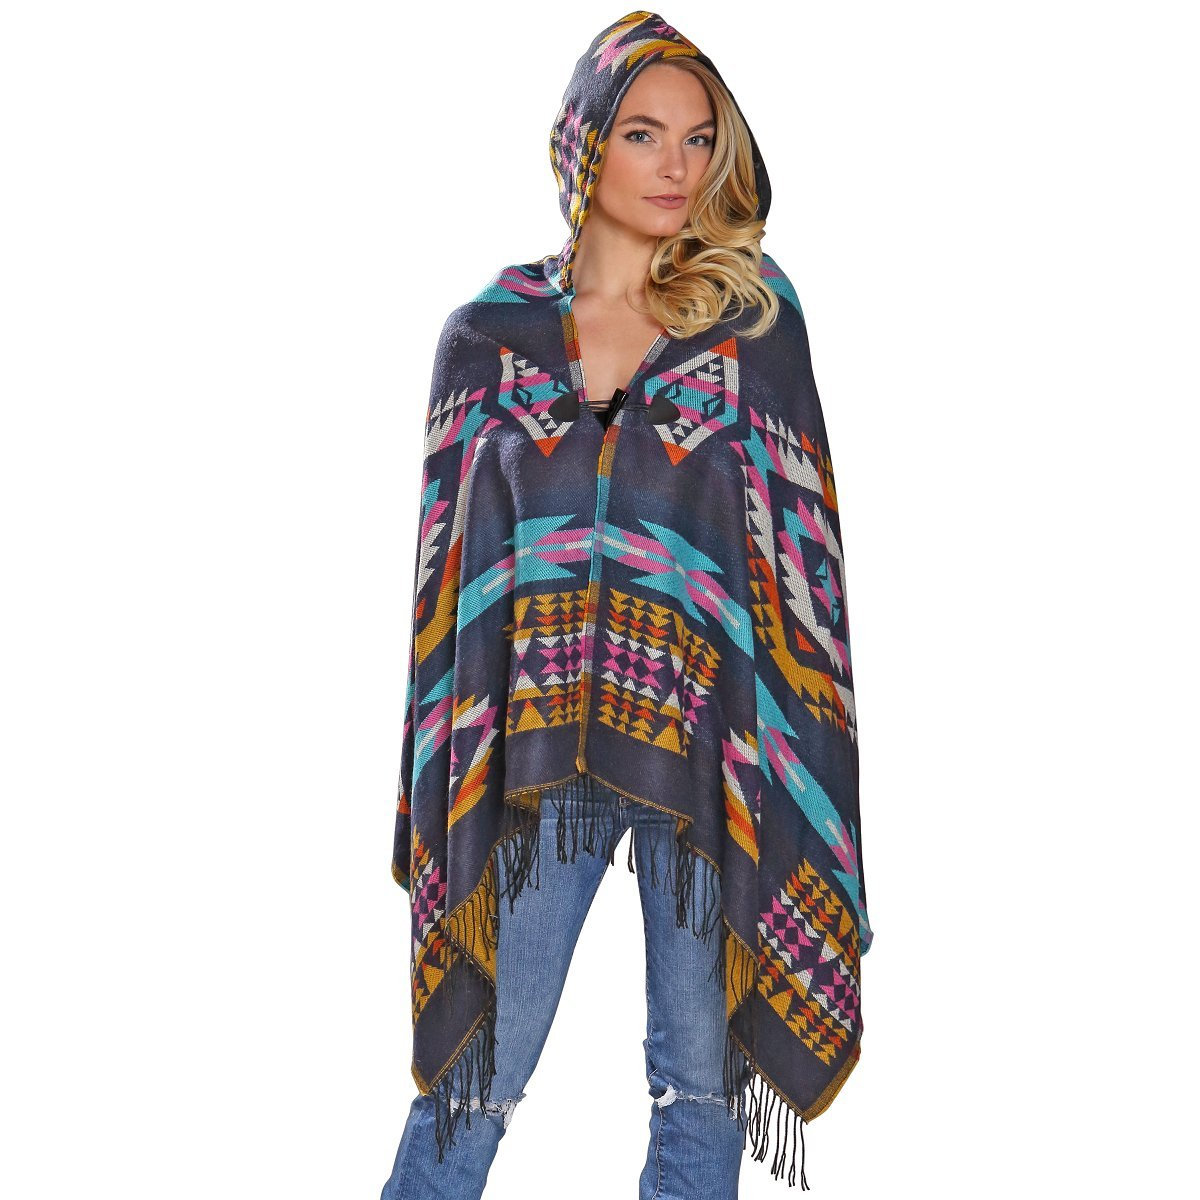 El Paso Designs Women's Hooded Poncho in Southwest Geometric Patterns and Rich Colors Cardigan Poncho Hoodie Cape With Fringe (Aztec 5)